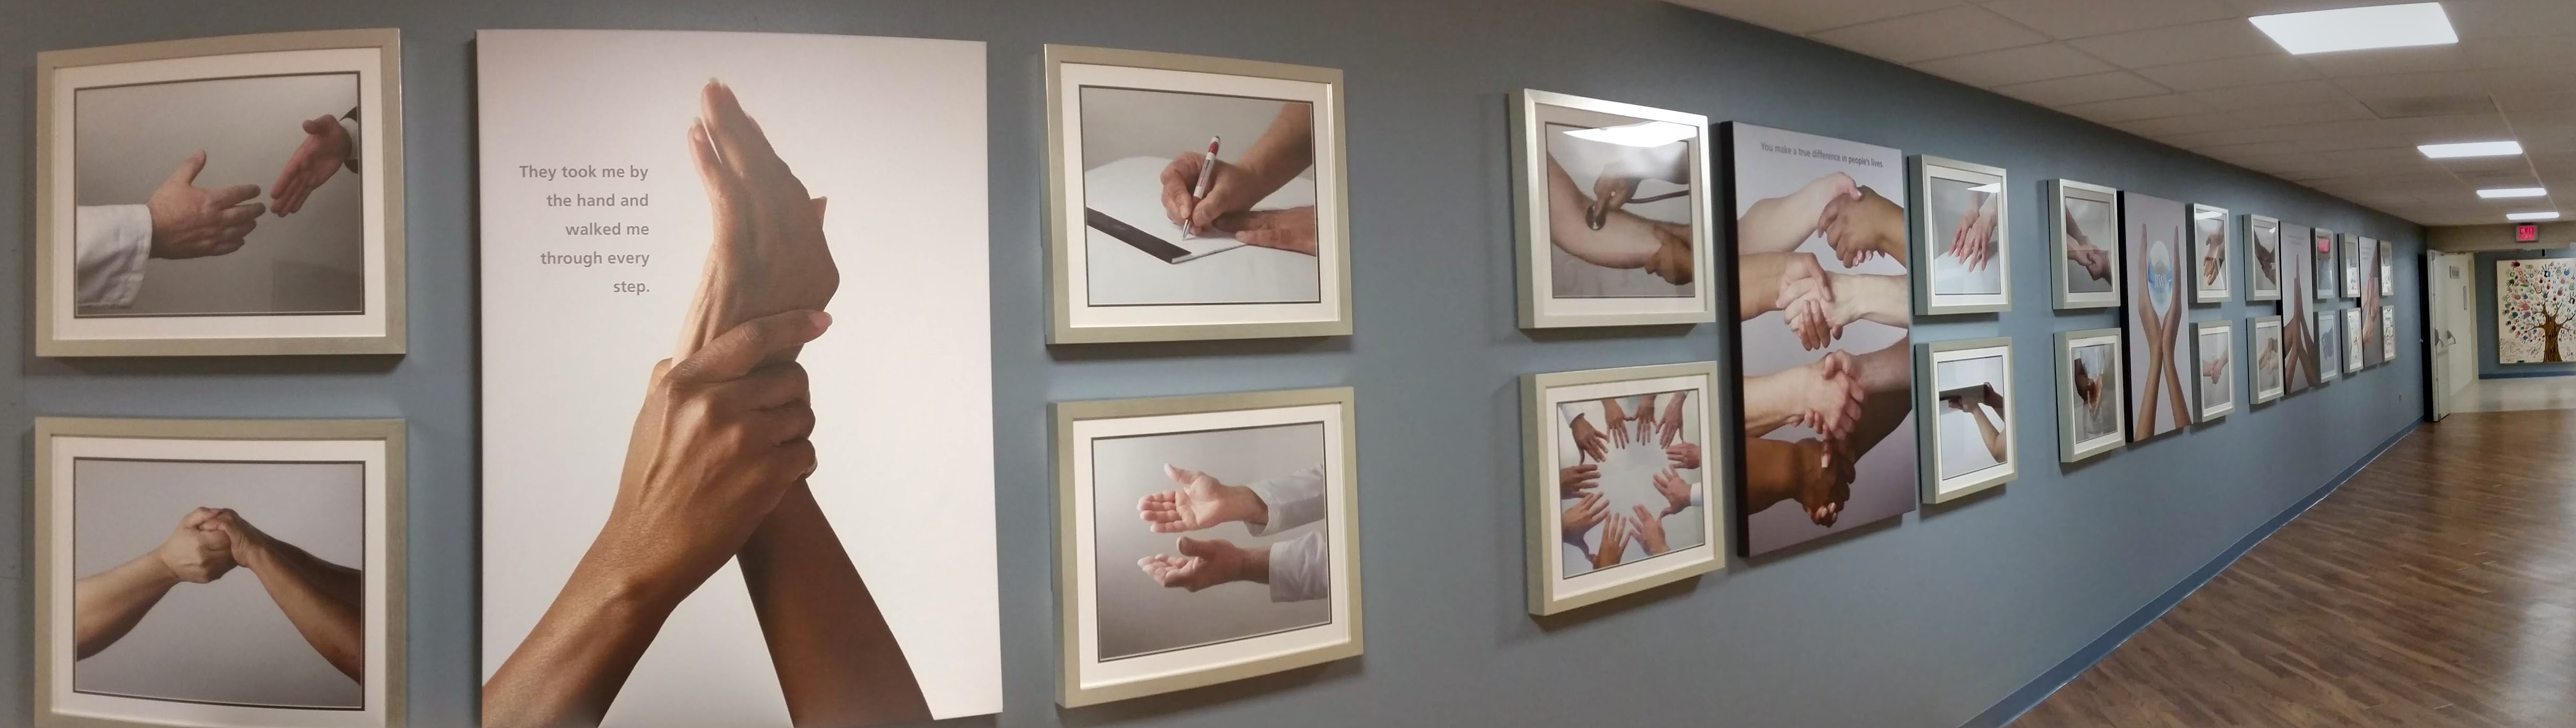 Healing Hands user experience installation